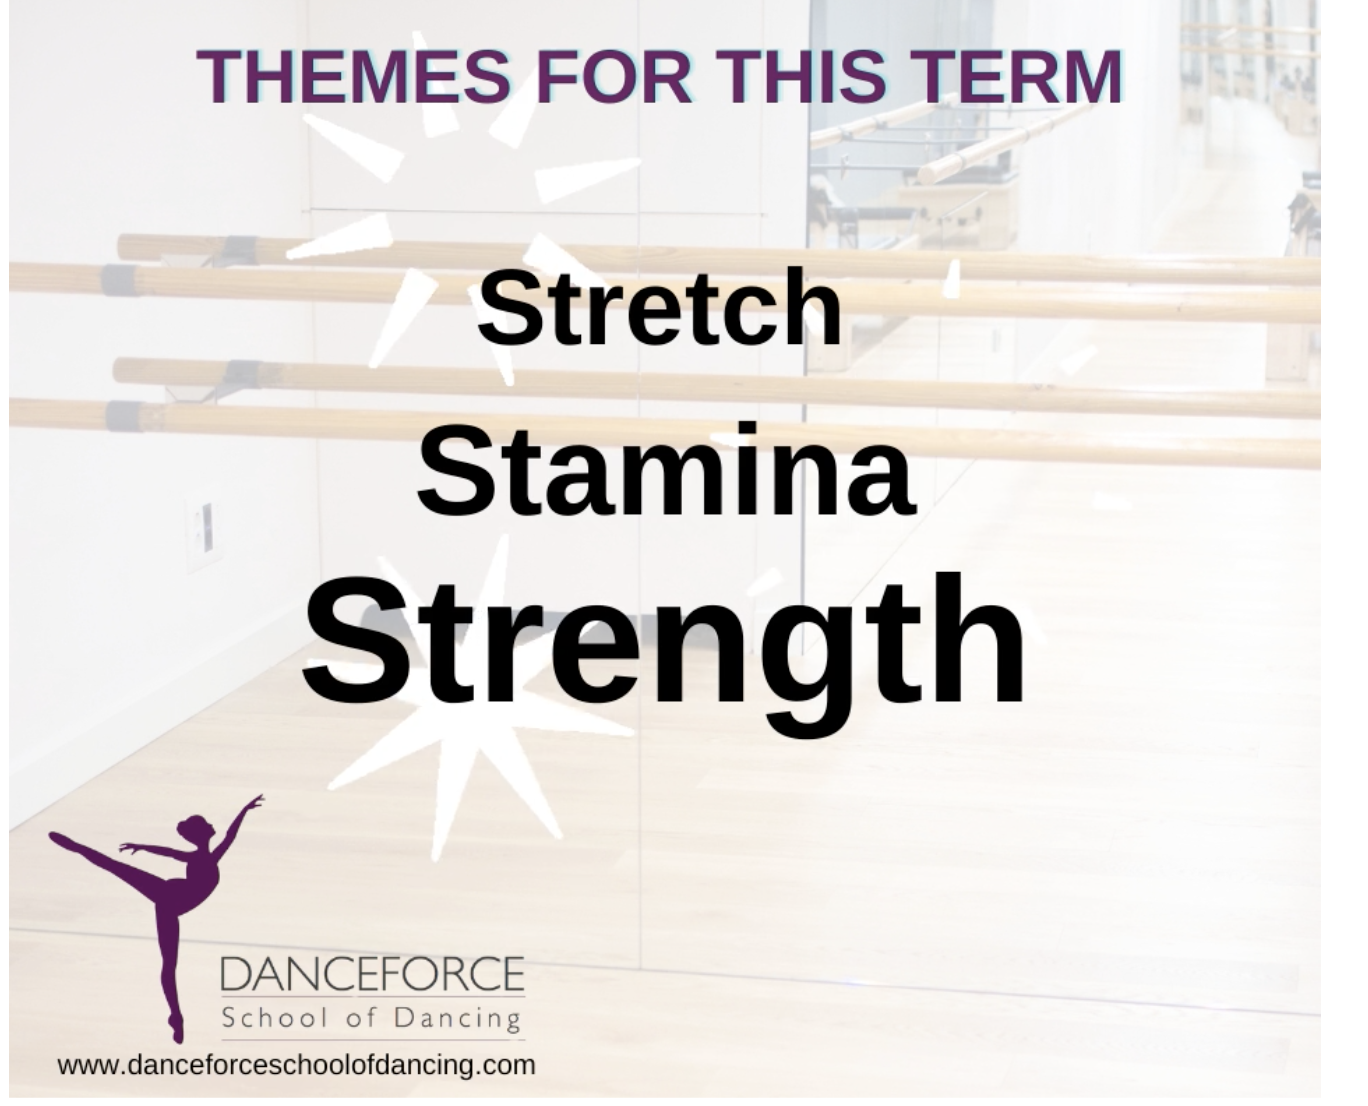 We are here for you! Your child will feel safe knowing that dance can remain constant no matter what else is happening. We will help their lives feel secure.